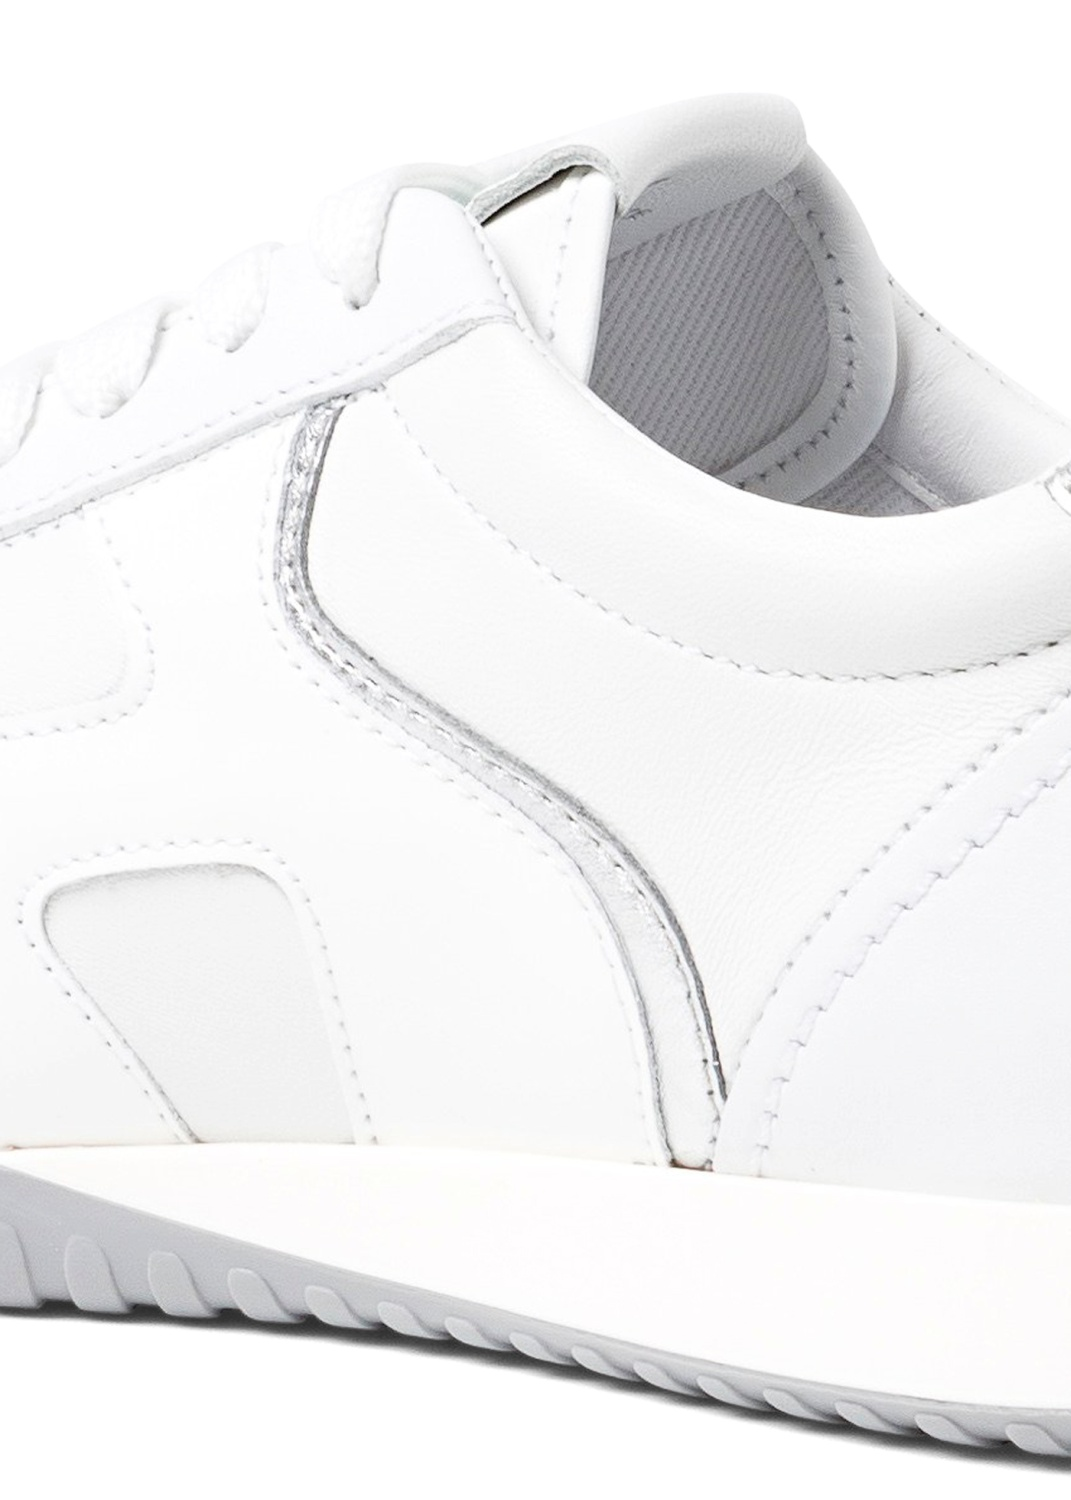 Olympia-Z Metallic Mix Sneaker image number 3